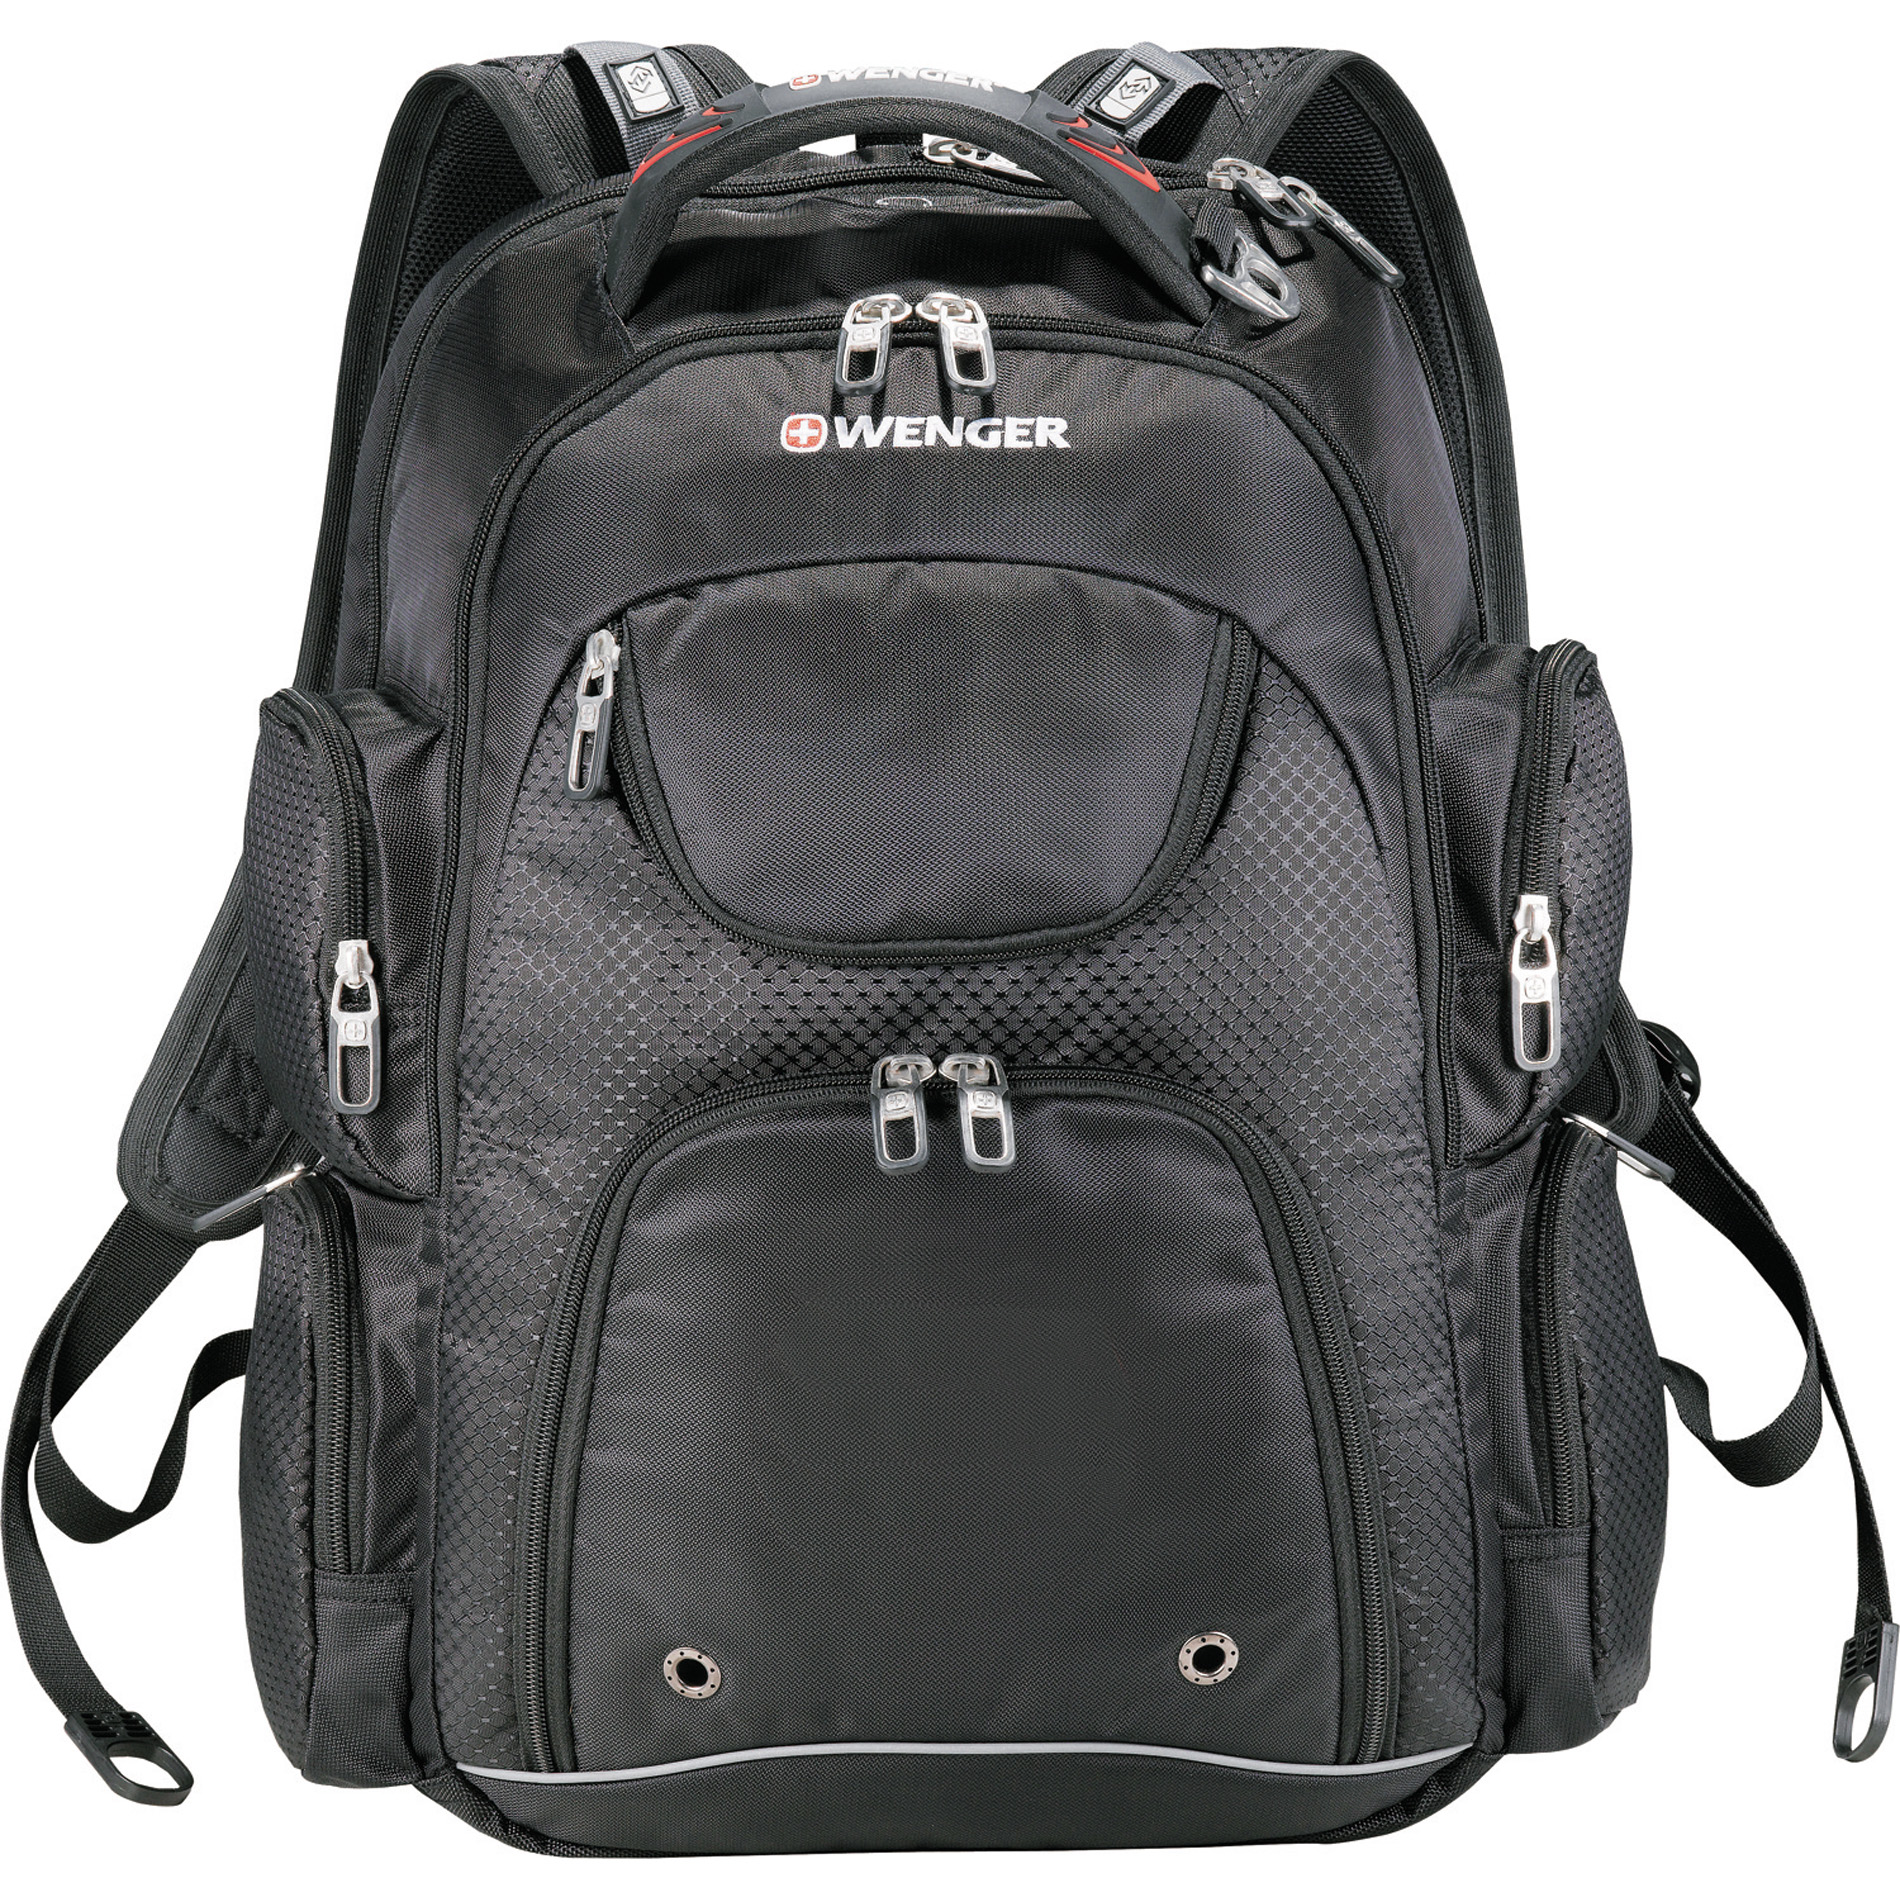 "Wenger 9350-42 - Scan Smart Trek 17"" Computer Backpack"